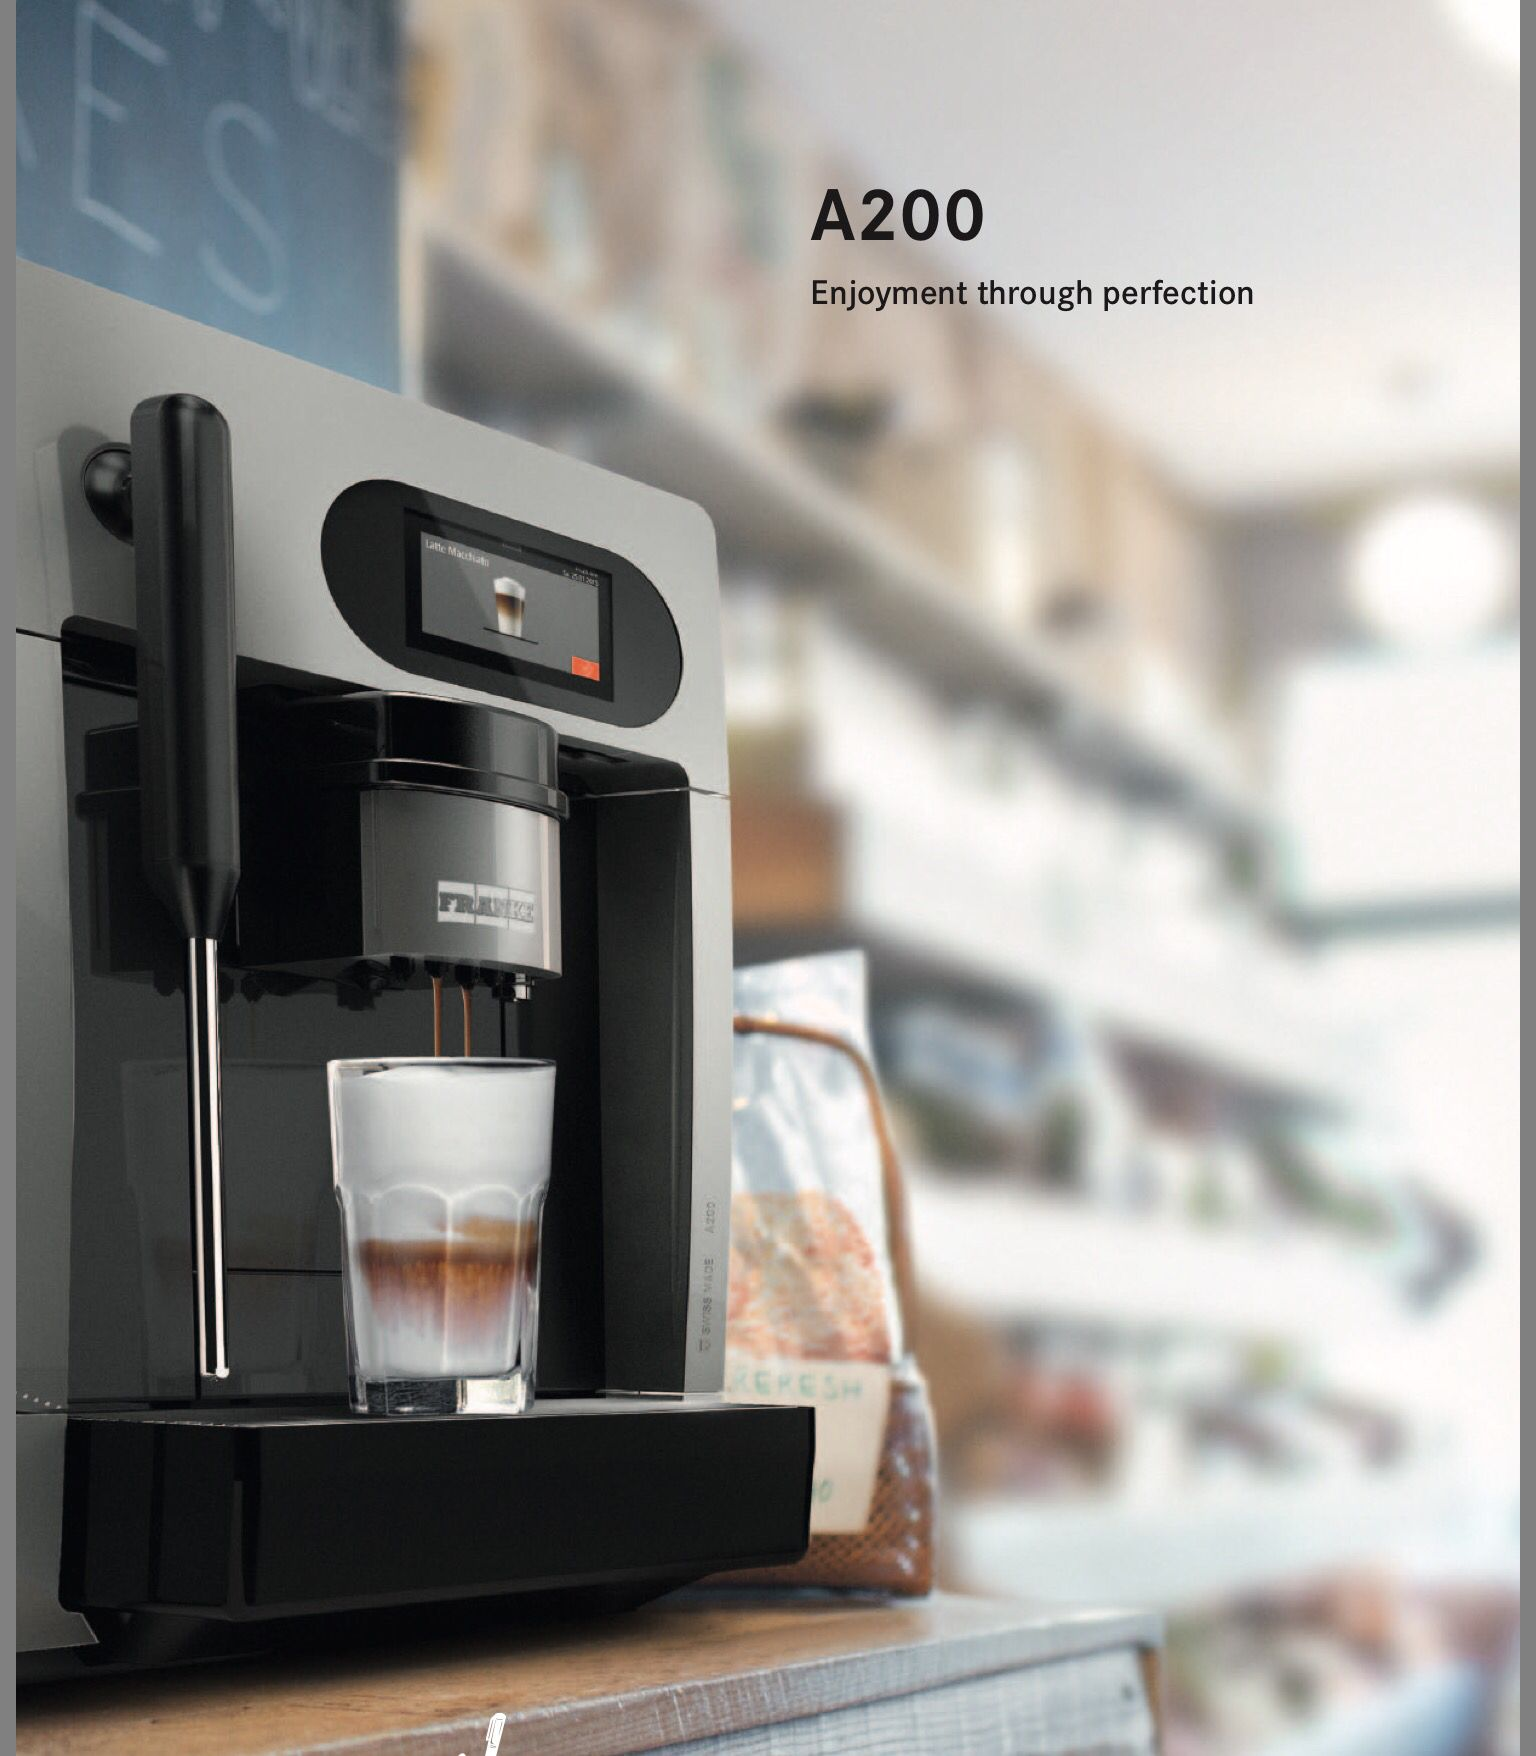 Pin by Solino on Franke Automatic coffee machine, Coffee